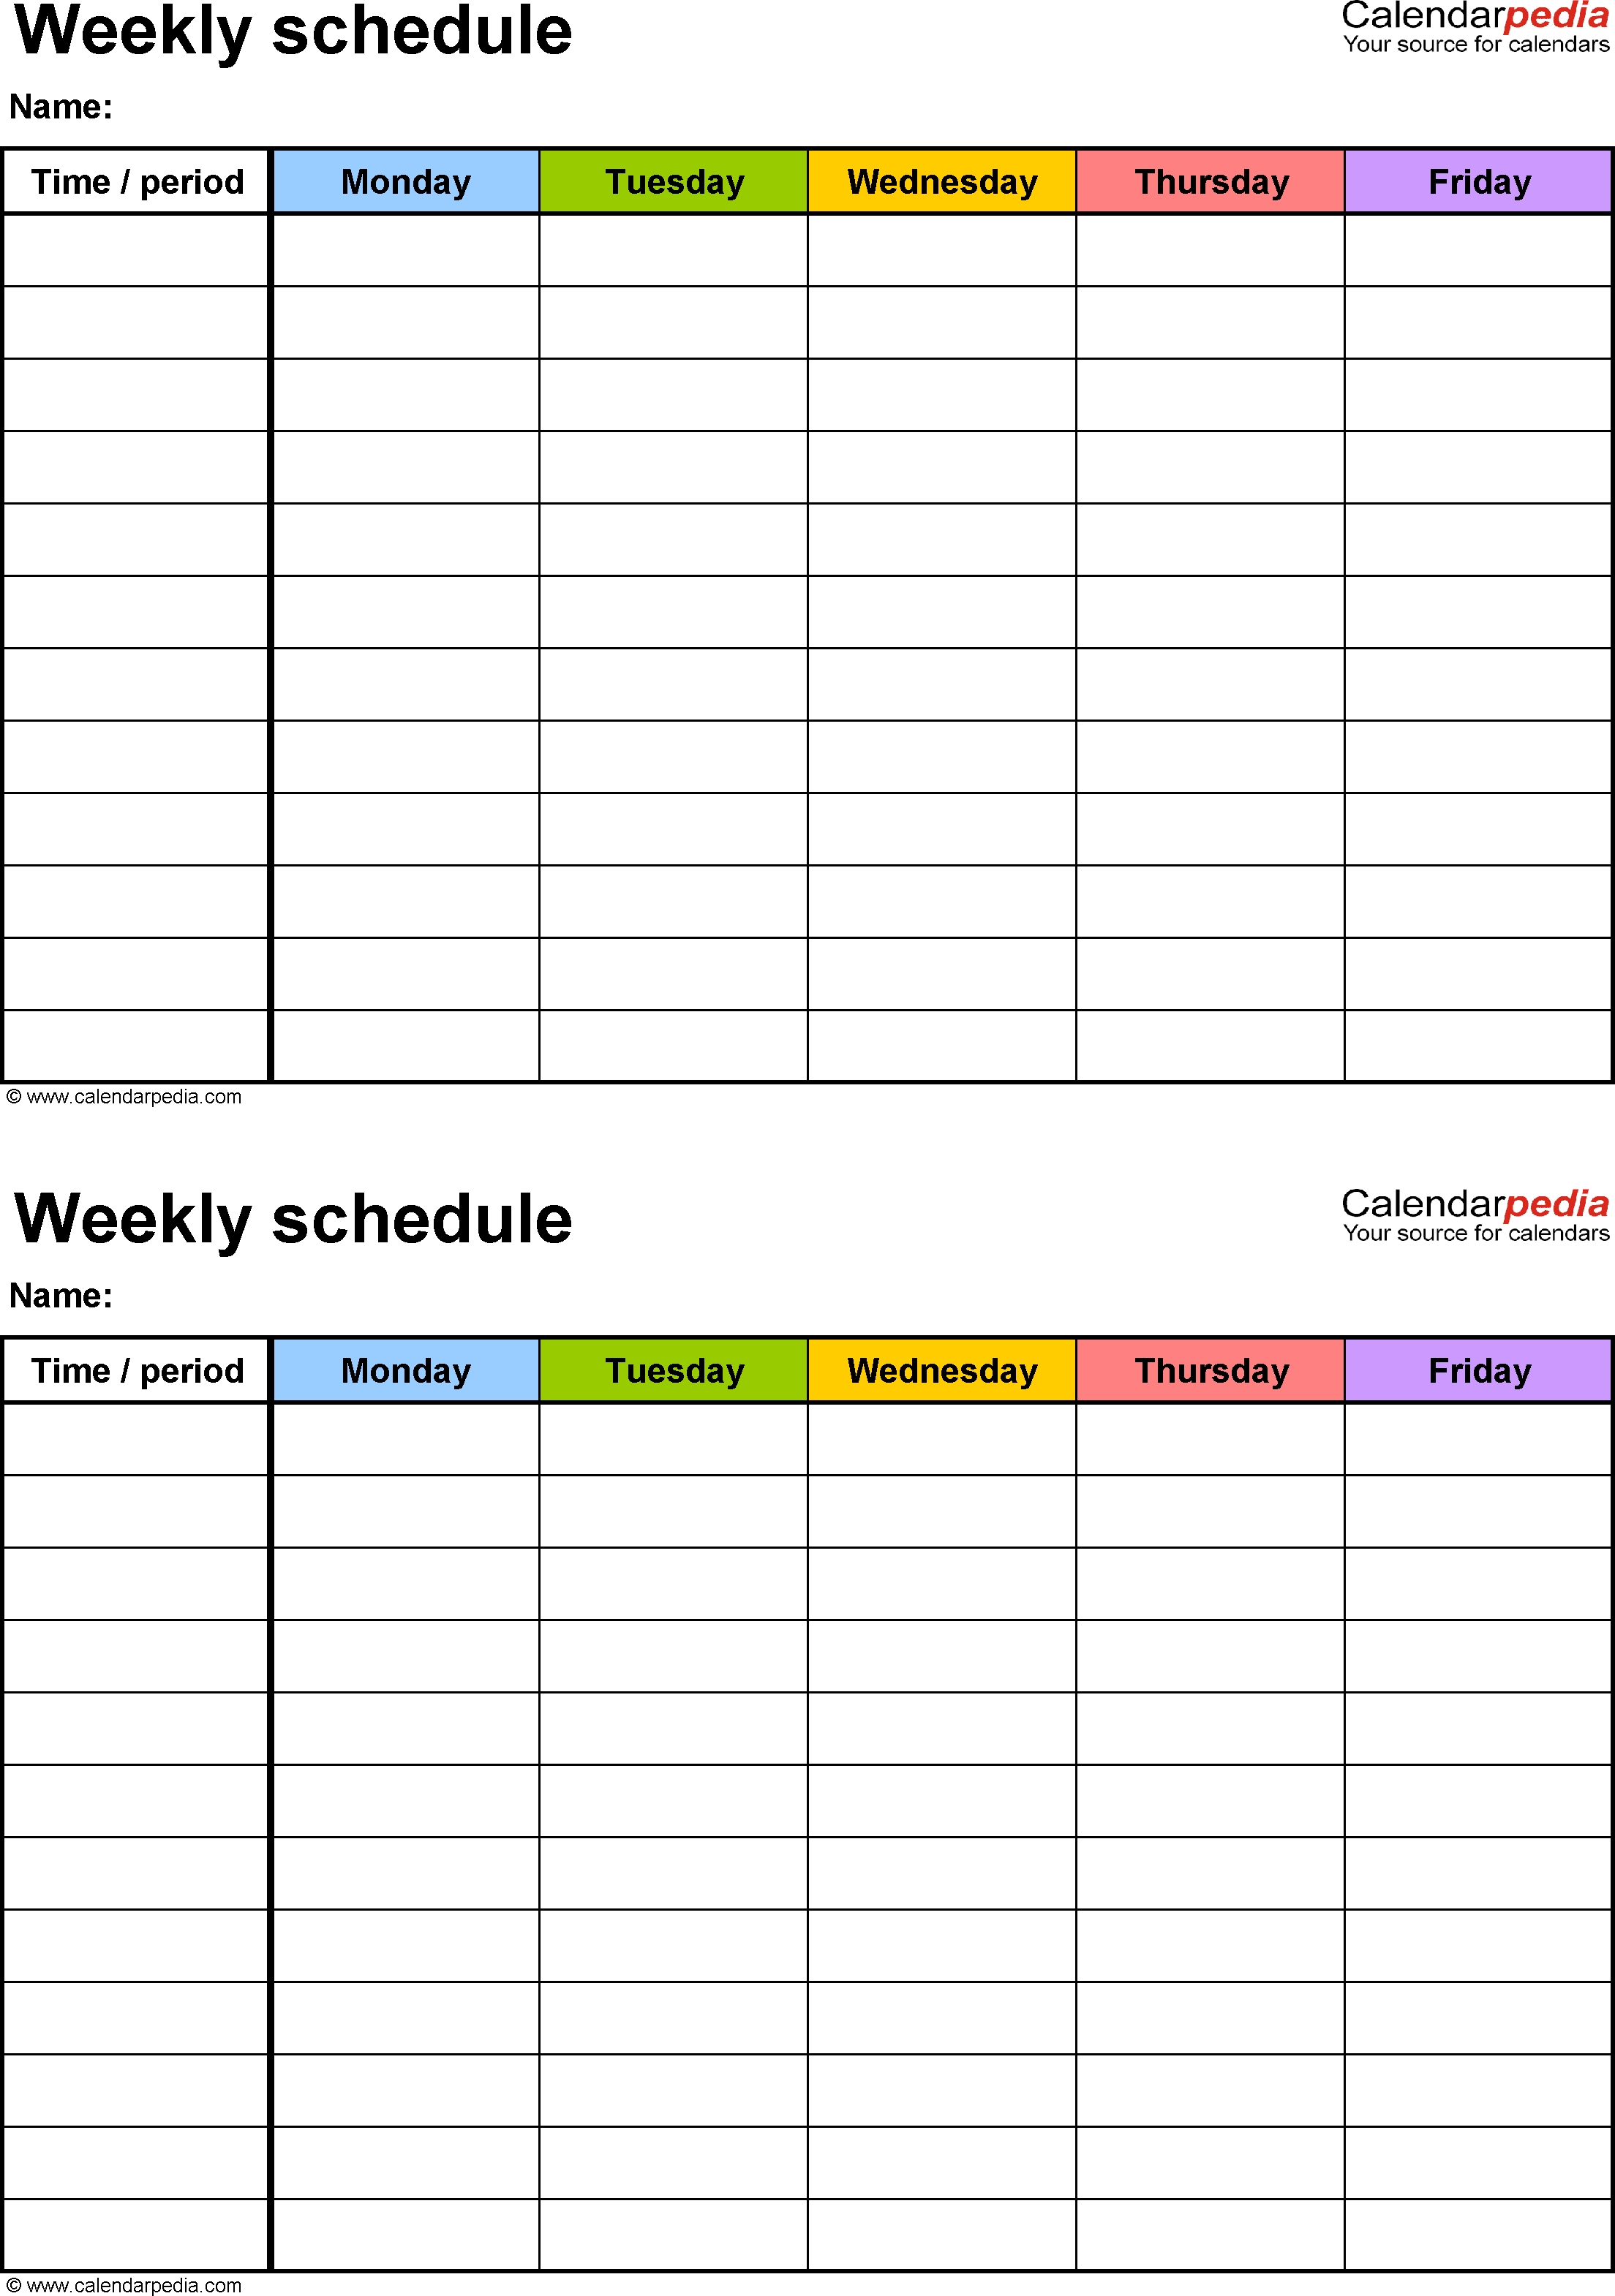 Free Weekly Schedule Templates For Excel - 18 Templates_3 Week Blank Calendar